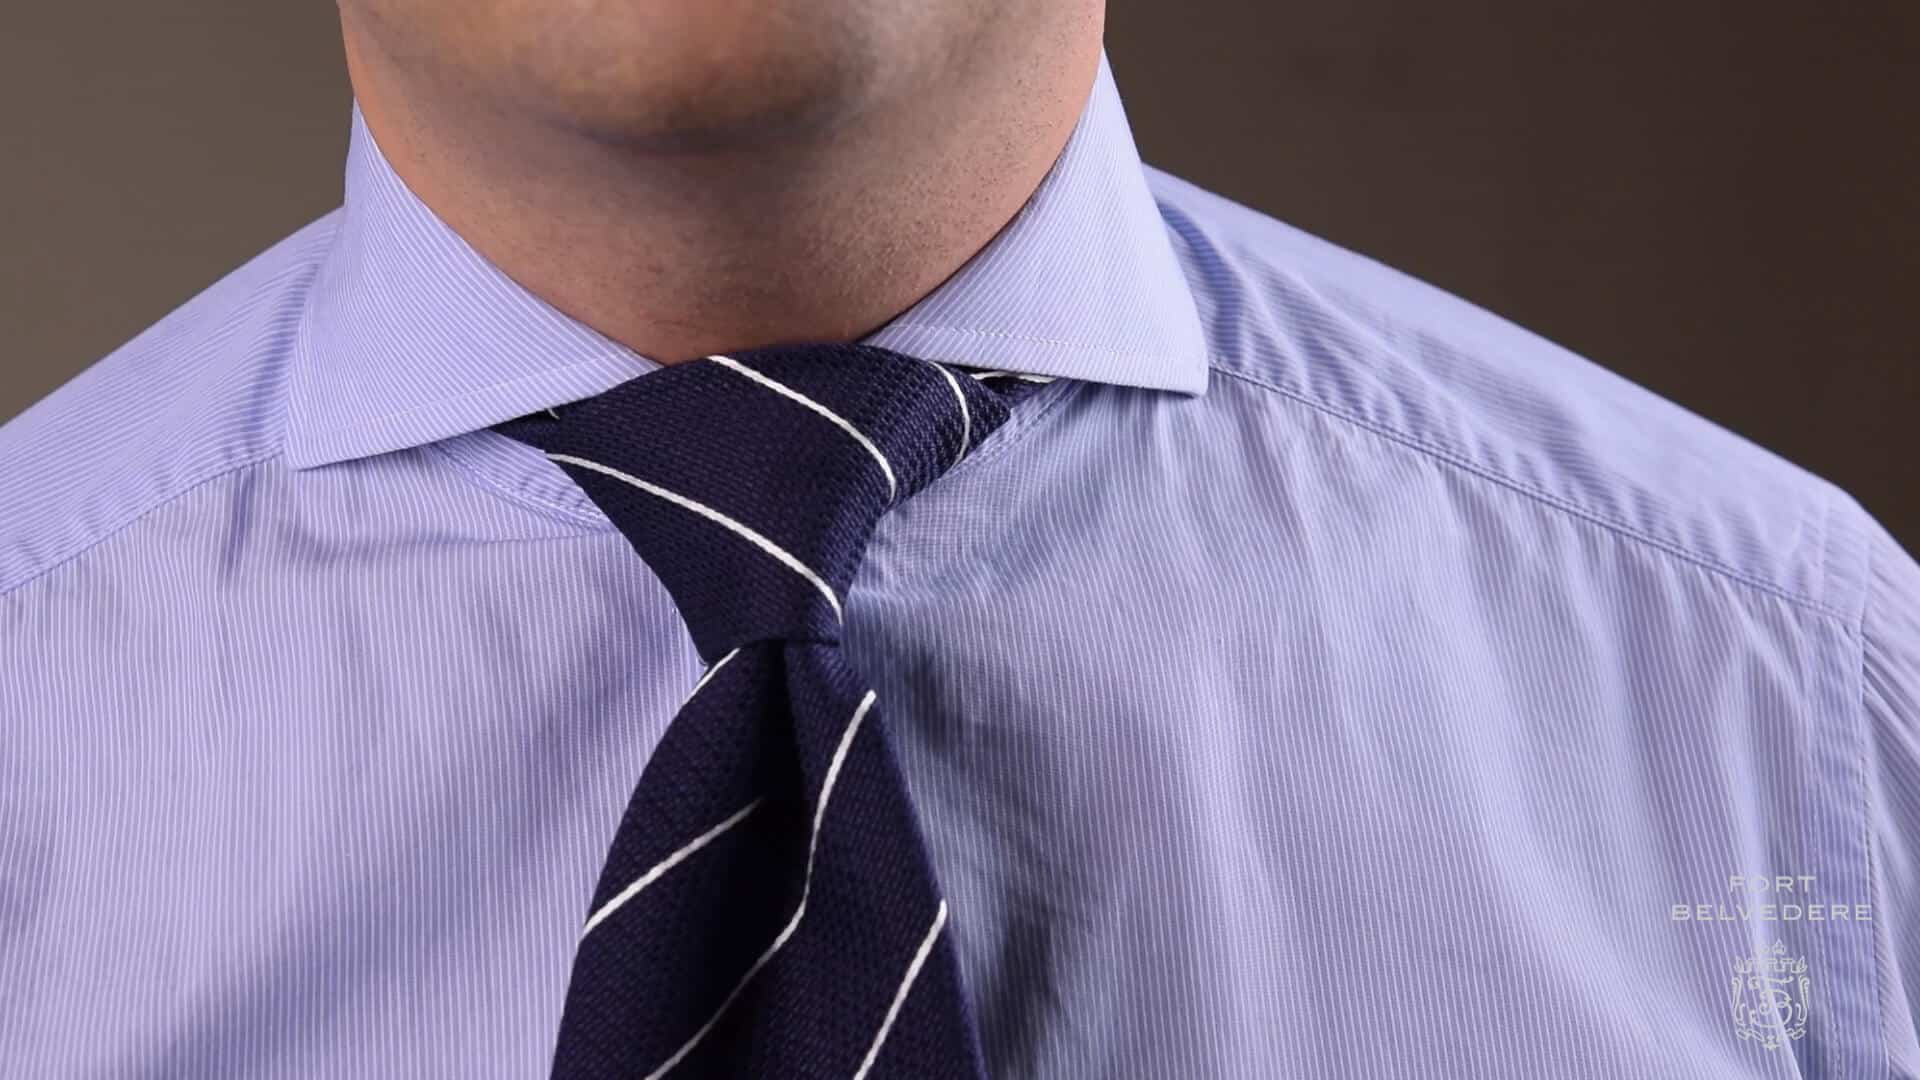 Half Windsor Knot With Thick Navy Striped Tie By Fort Belvedere